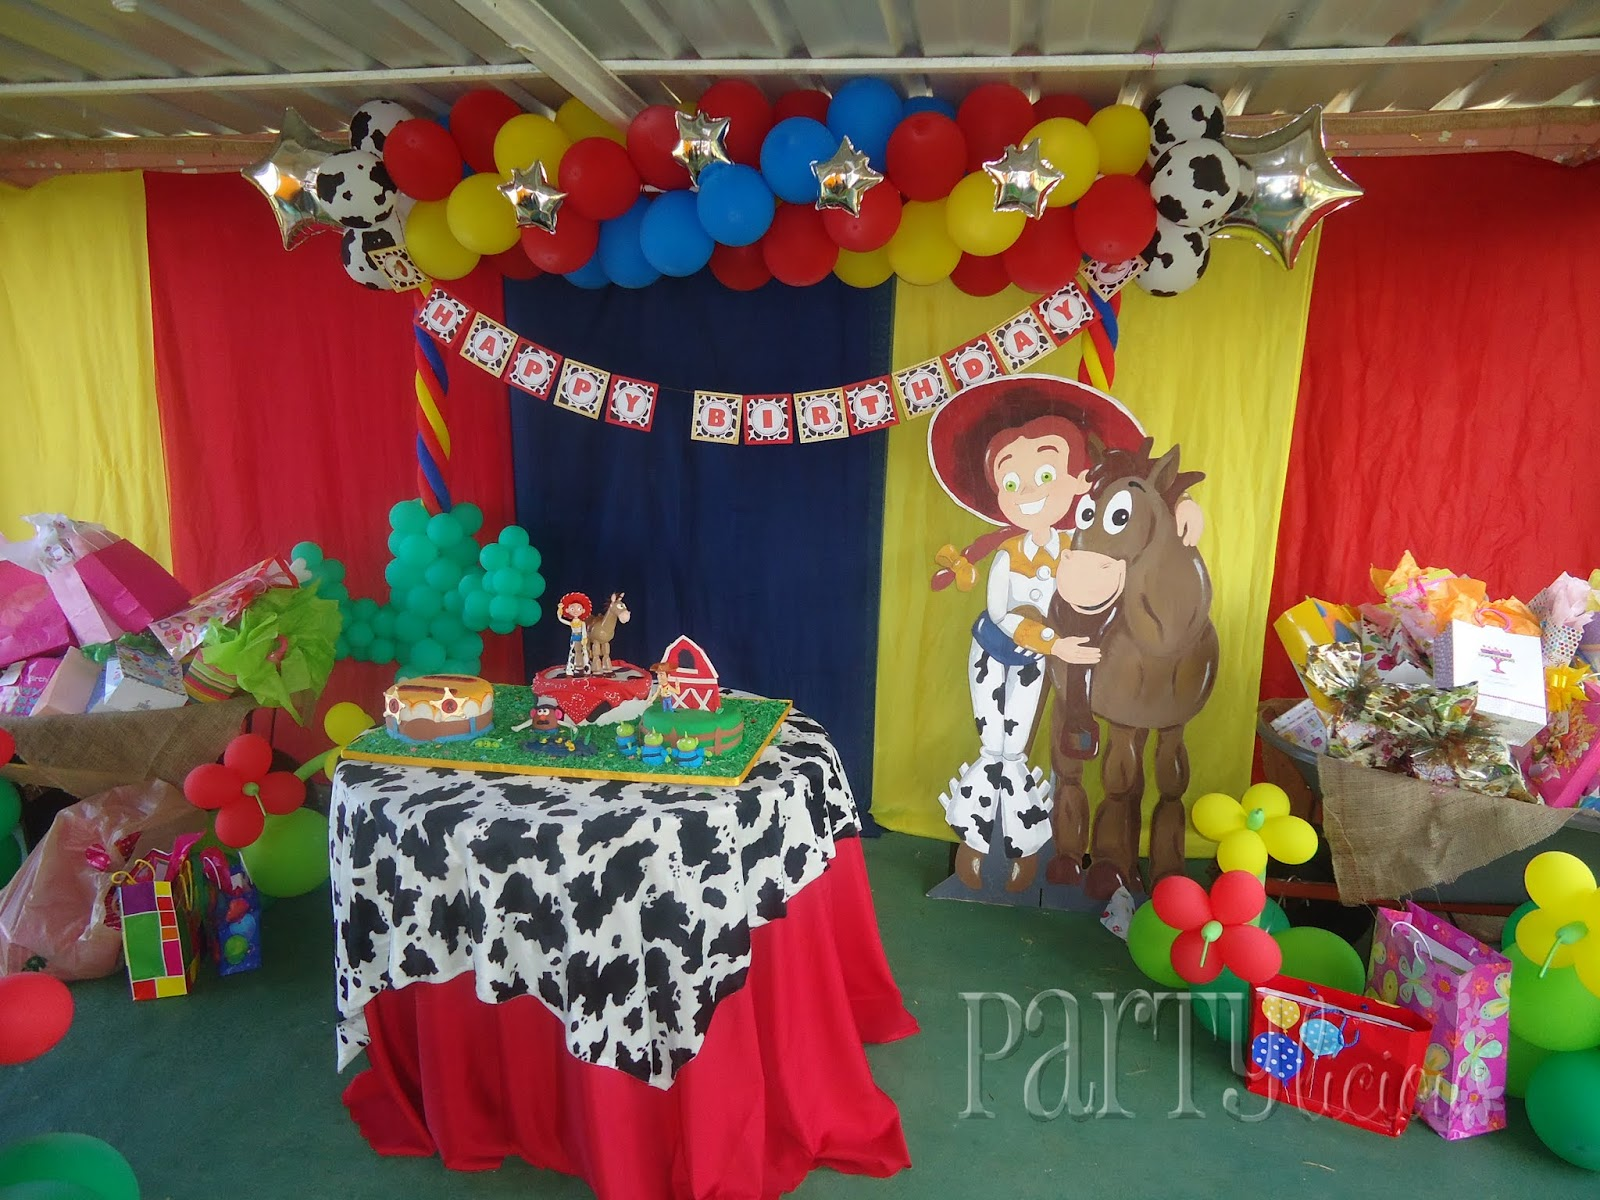 Toy Story Birthday Party : Partylicious events pr jessie toy story birthday